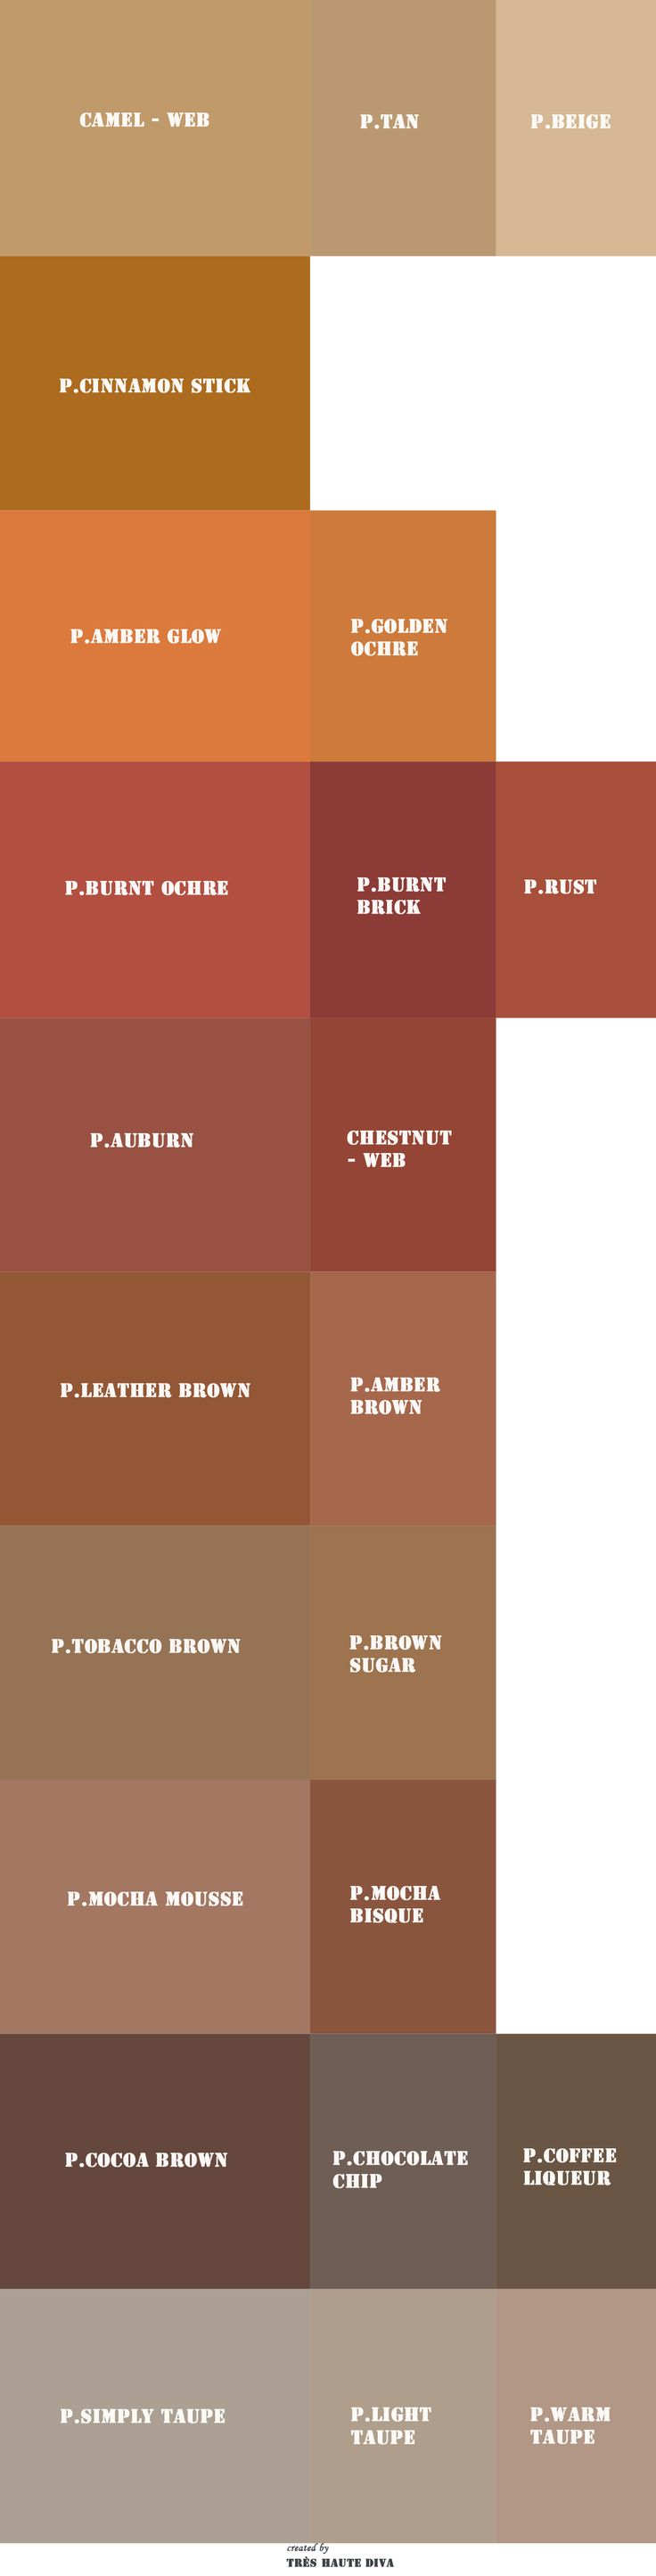 My BROWN Pantone P And Web WEB Reference Colors By The Way As Well Are Sometimes Off From Wikipedia